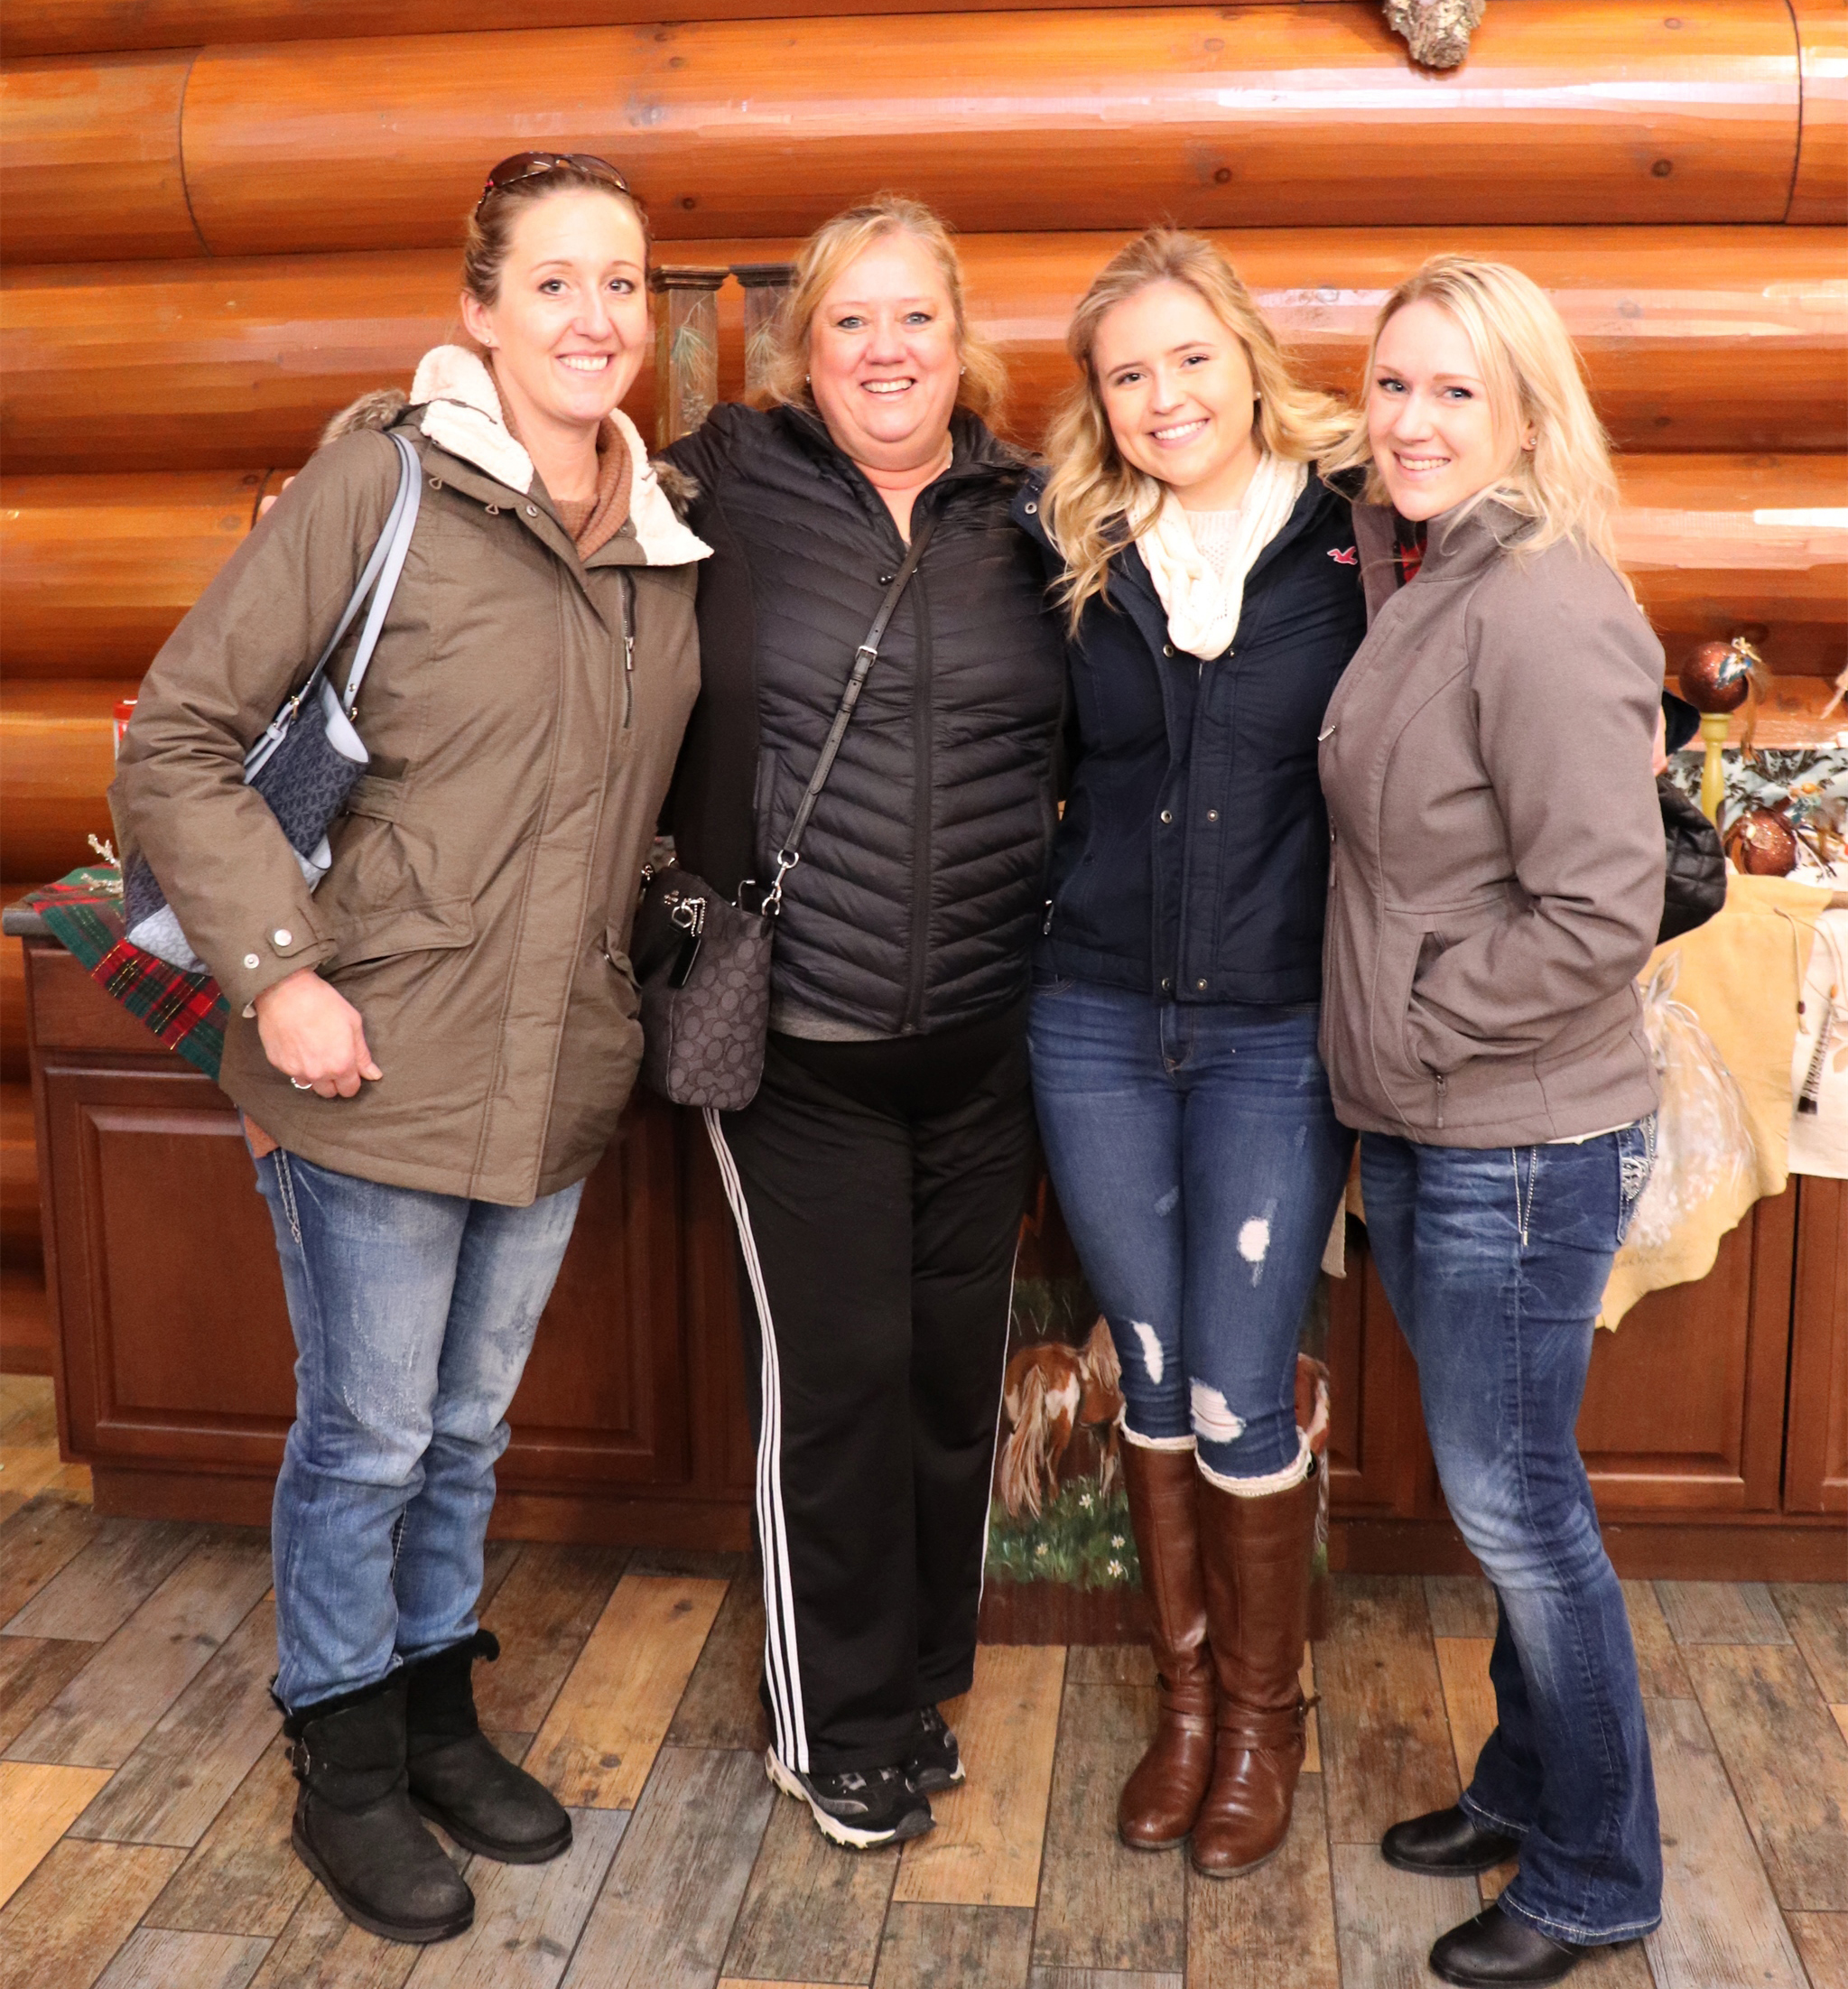 Amanda, Debbie, Aryssa and Sara from Rhinelander enjoy shopping at the Holiday Market in Minocqua. Kim Johnson photo